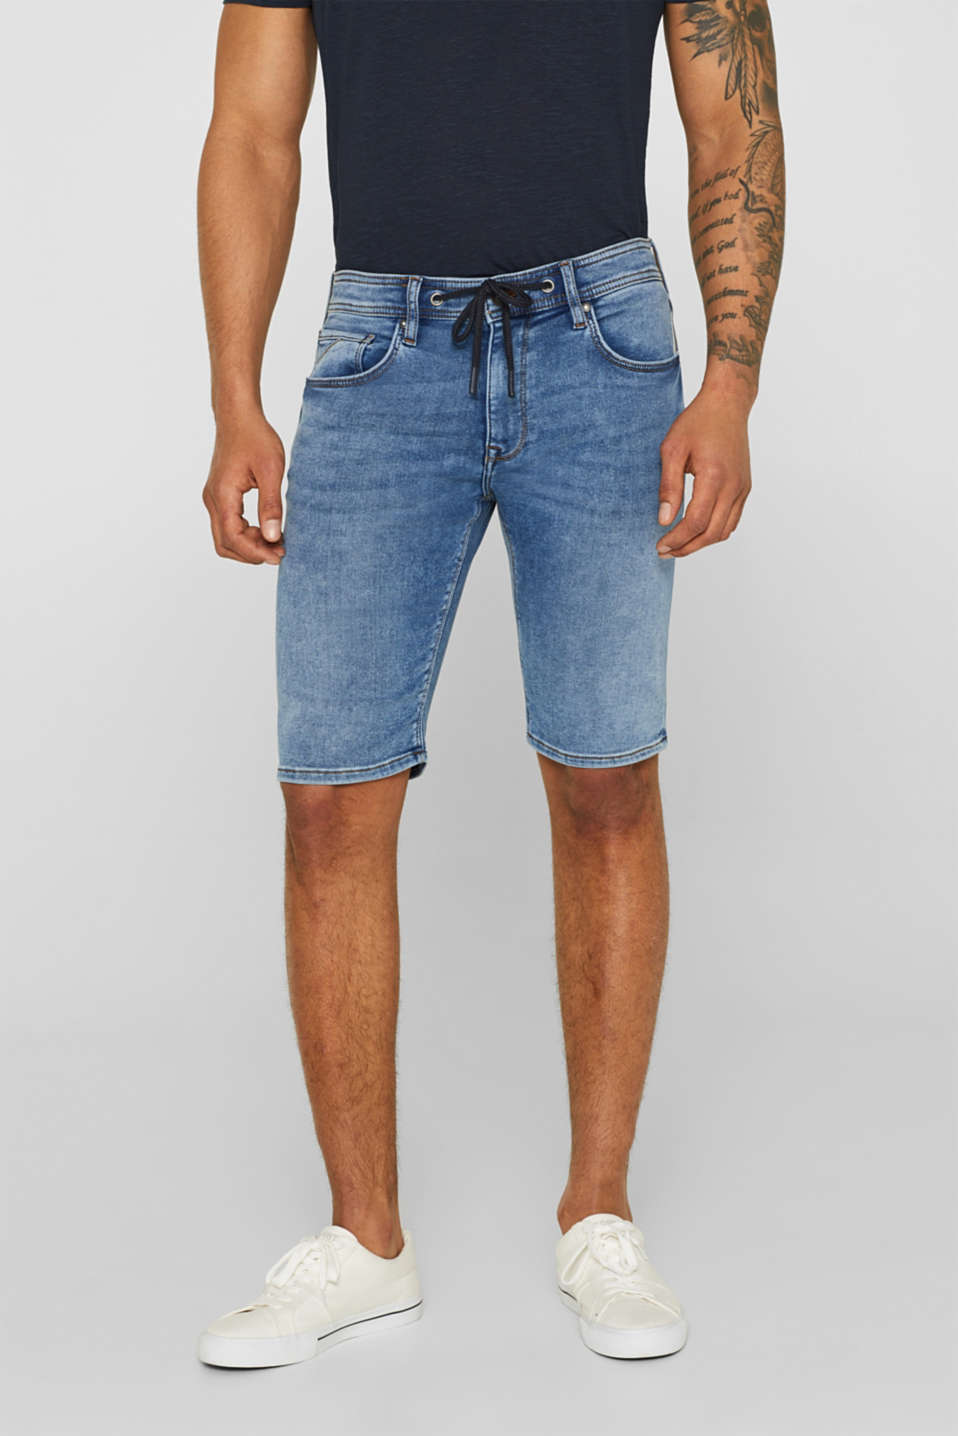 edc - Short en matière jogging super stretch d'aspect jean